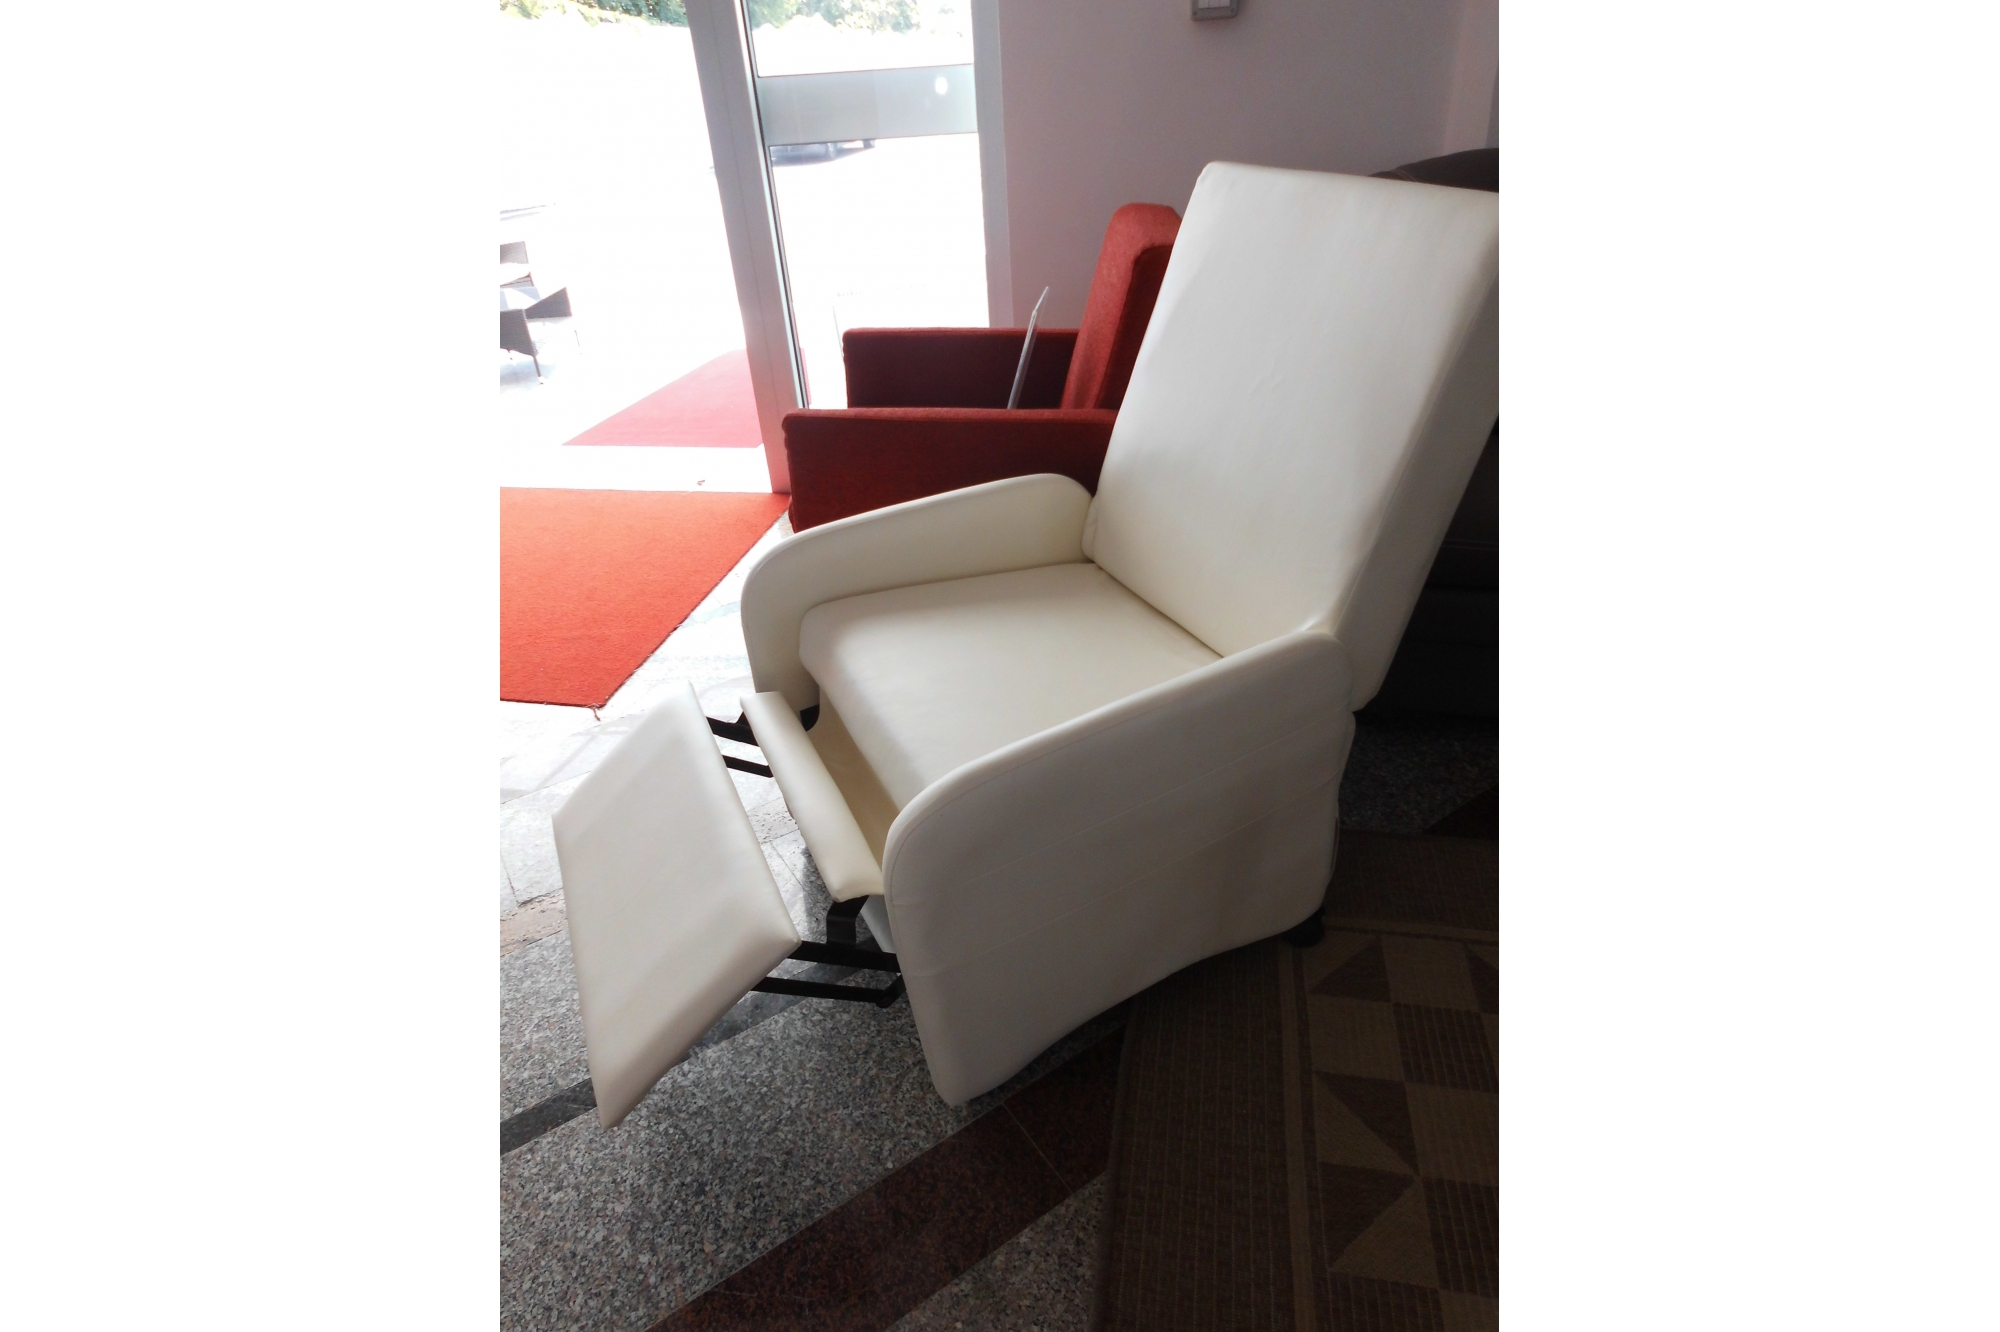 Nuovarredo Poltrone Relax.Nuovarredo Outlet